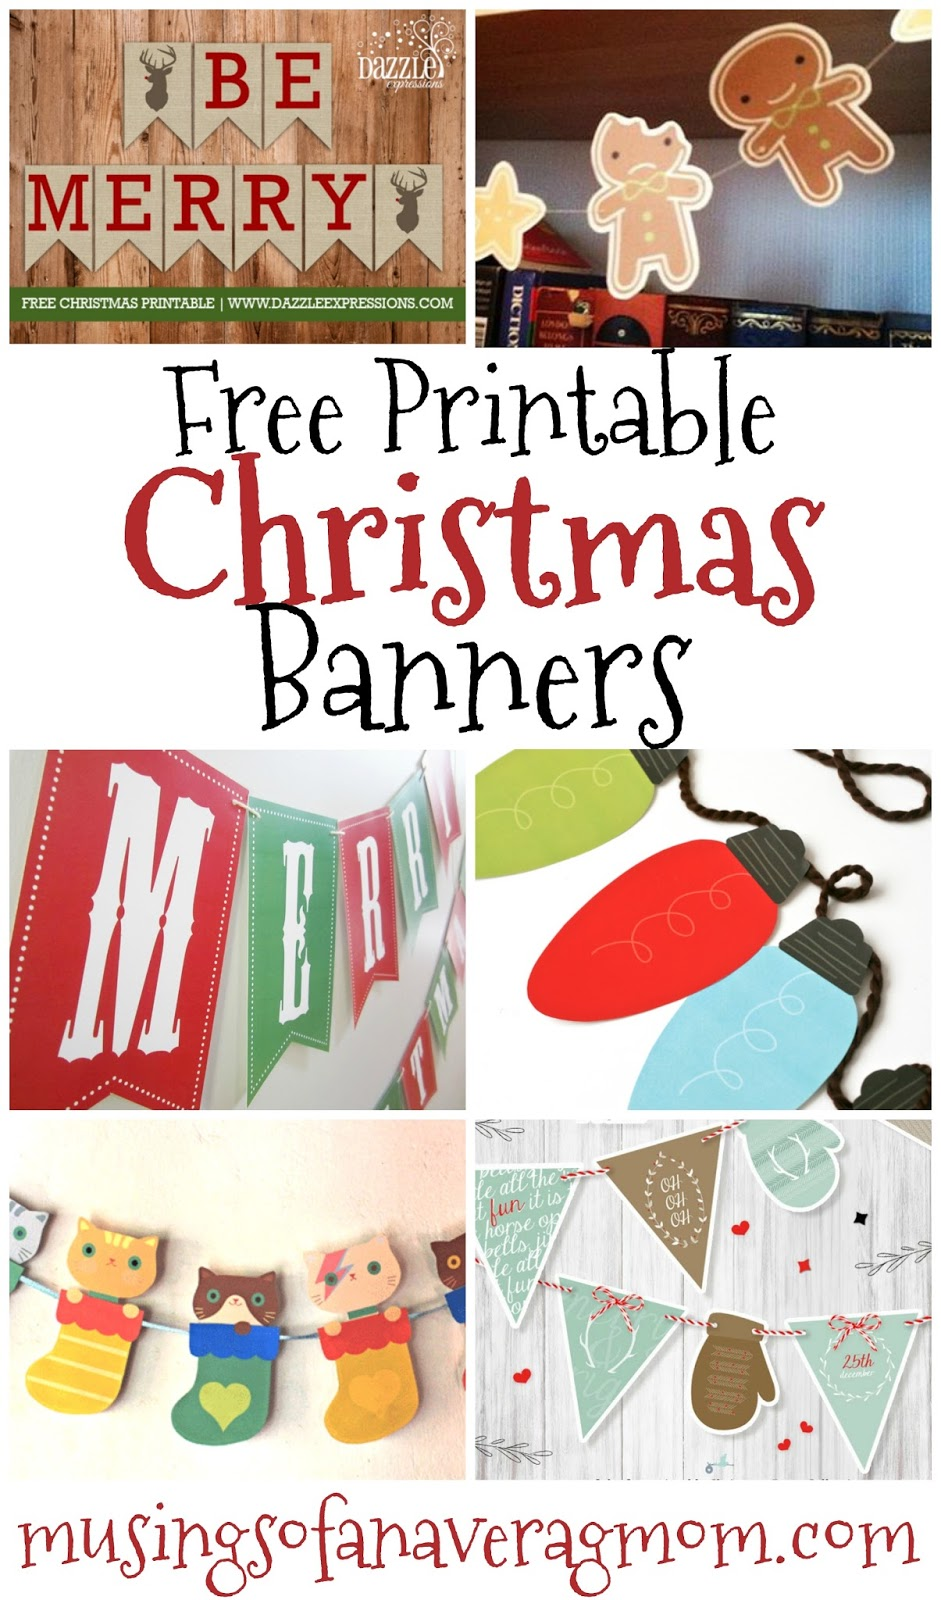 photograph relating to Merry Christmas Banner Printable named Musings of an Common Mother: Free of charge printable Xmas banners